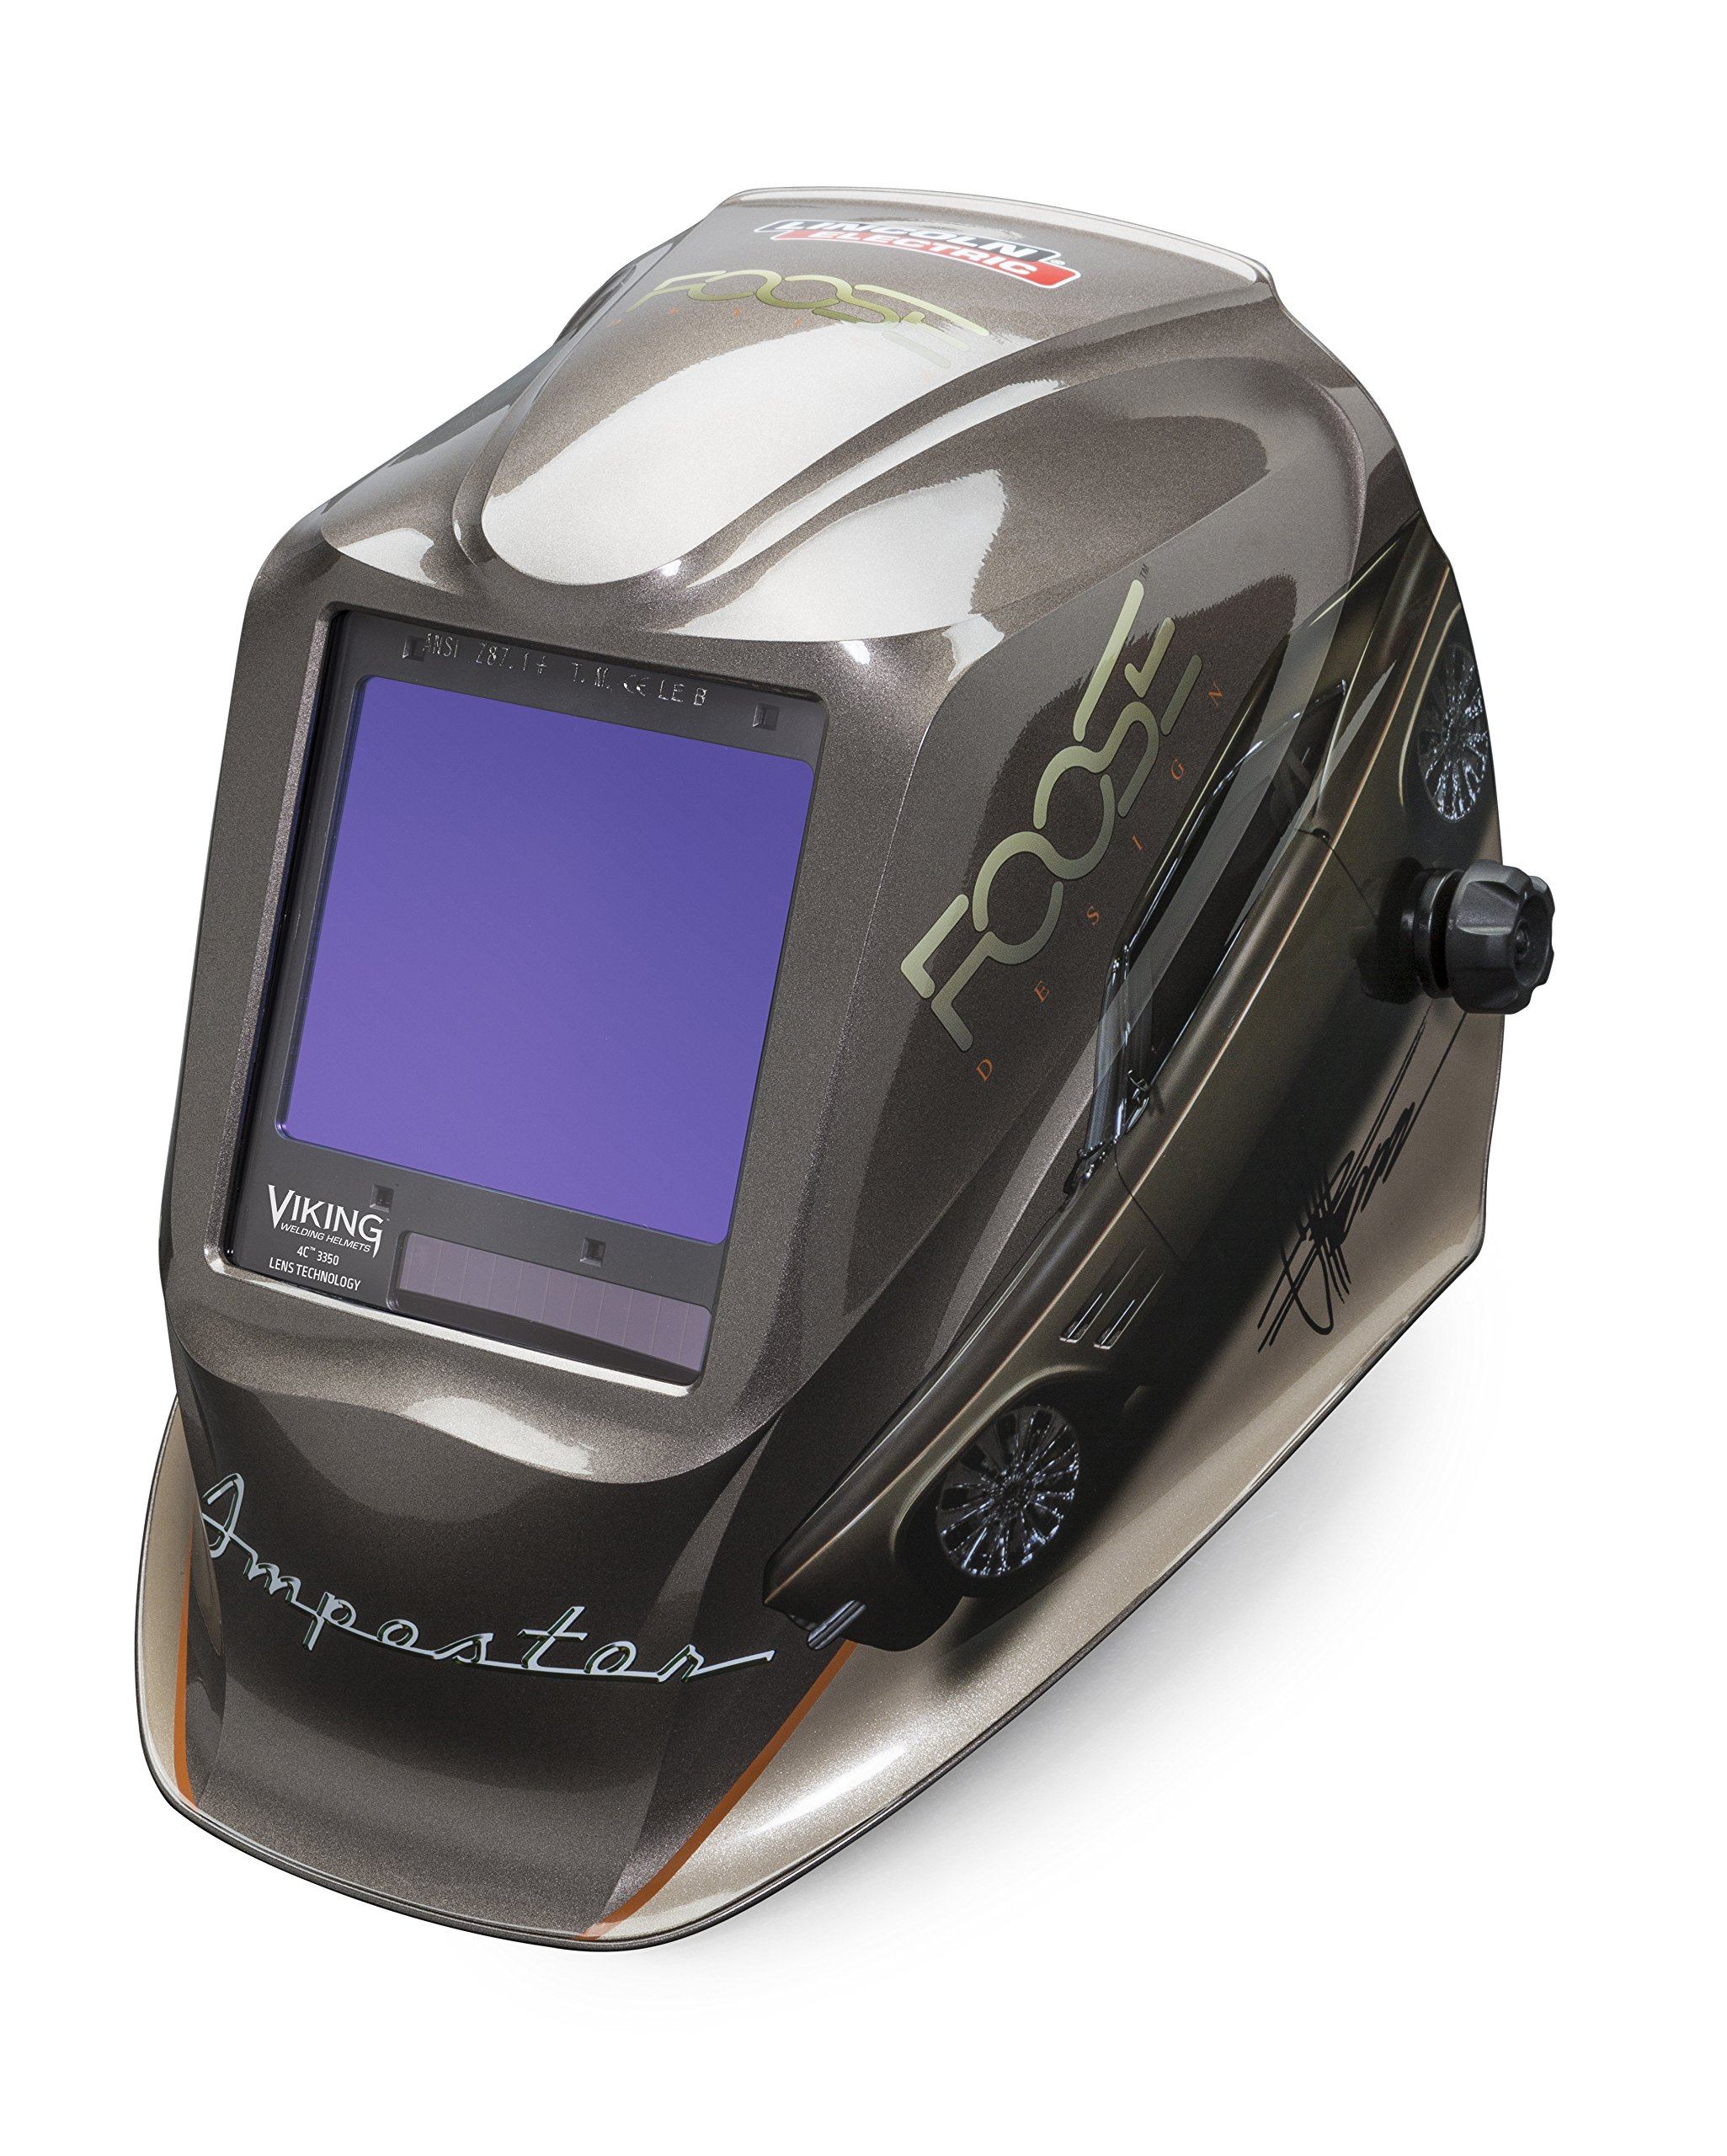 Lincoln Electric VIKING 3350 Impostor Welding Helmet with 4C Lens Technology - K4181-3 by Lincoln Electric